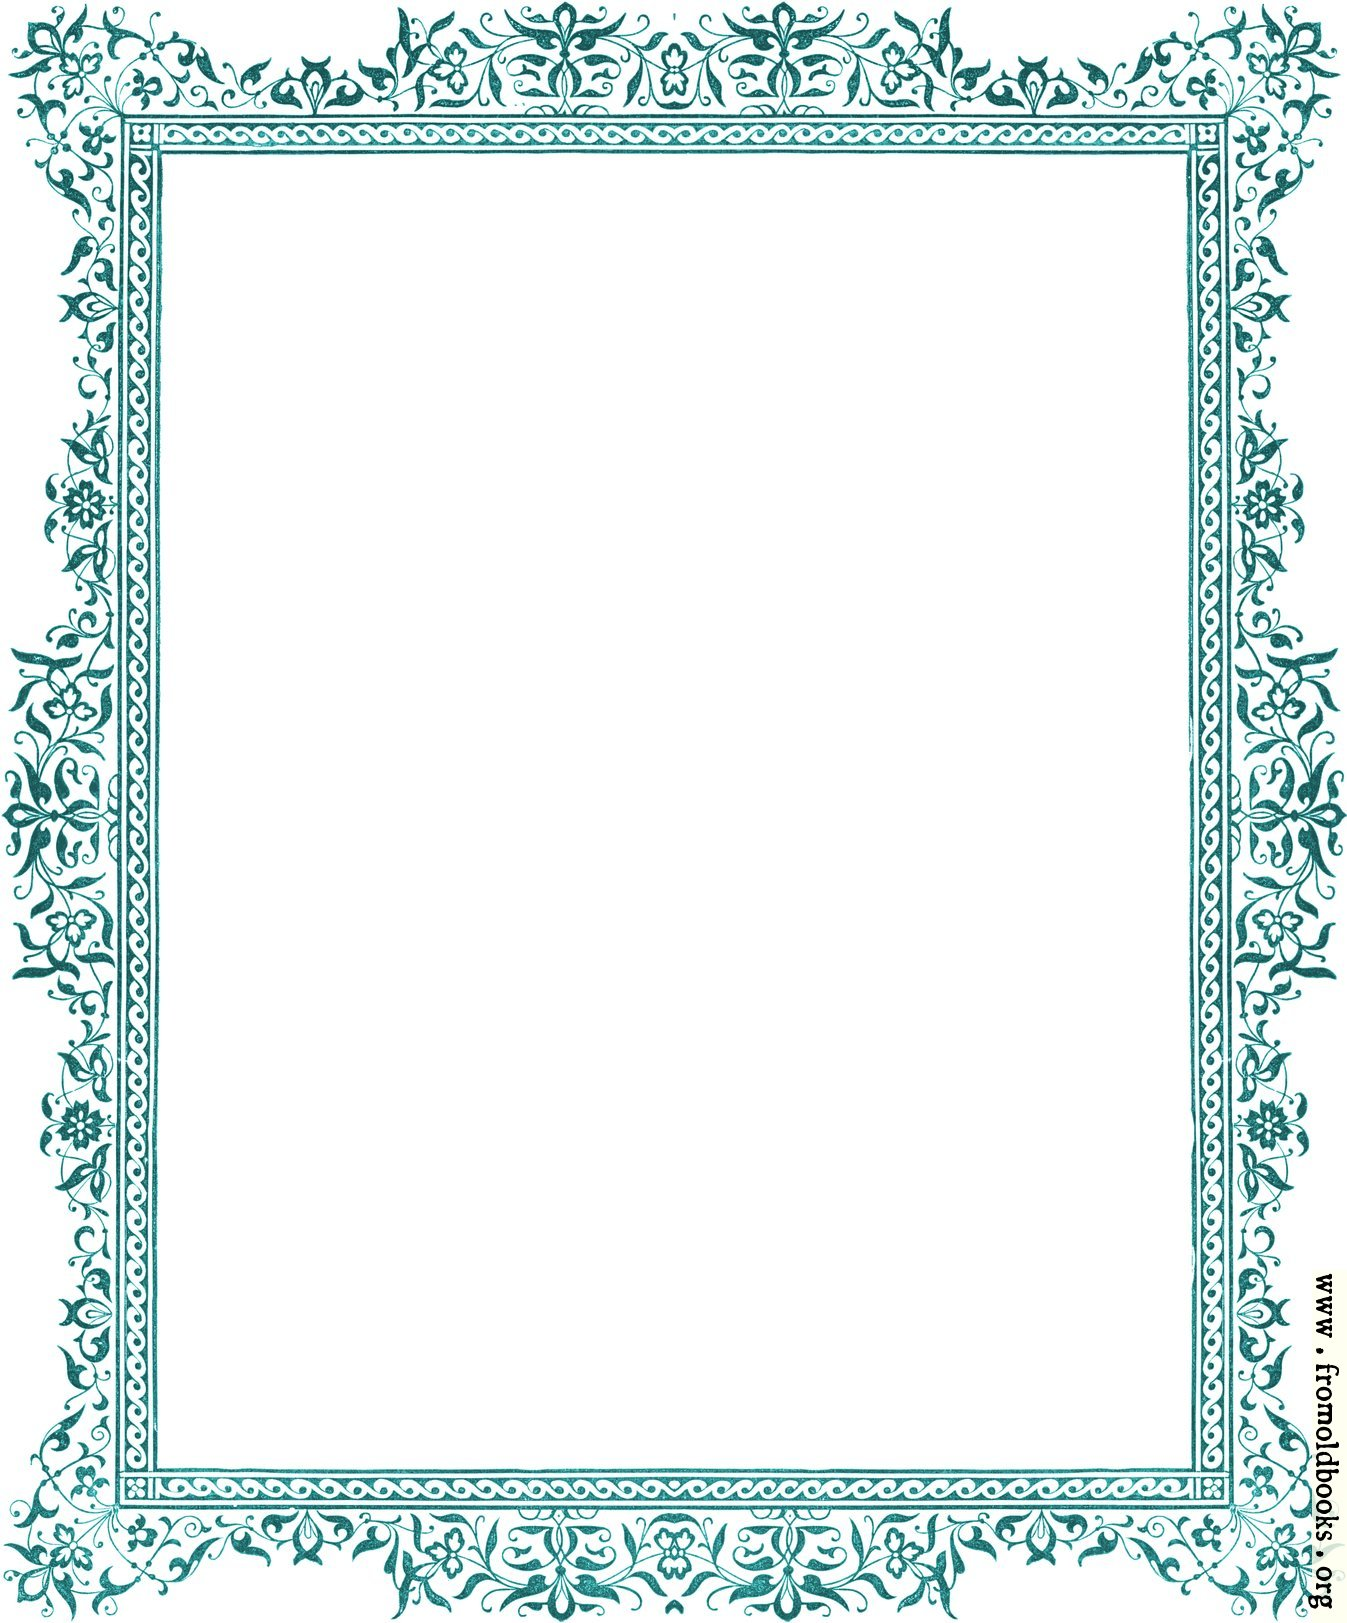 free clipart images borders - photo #19